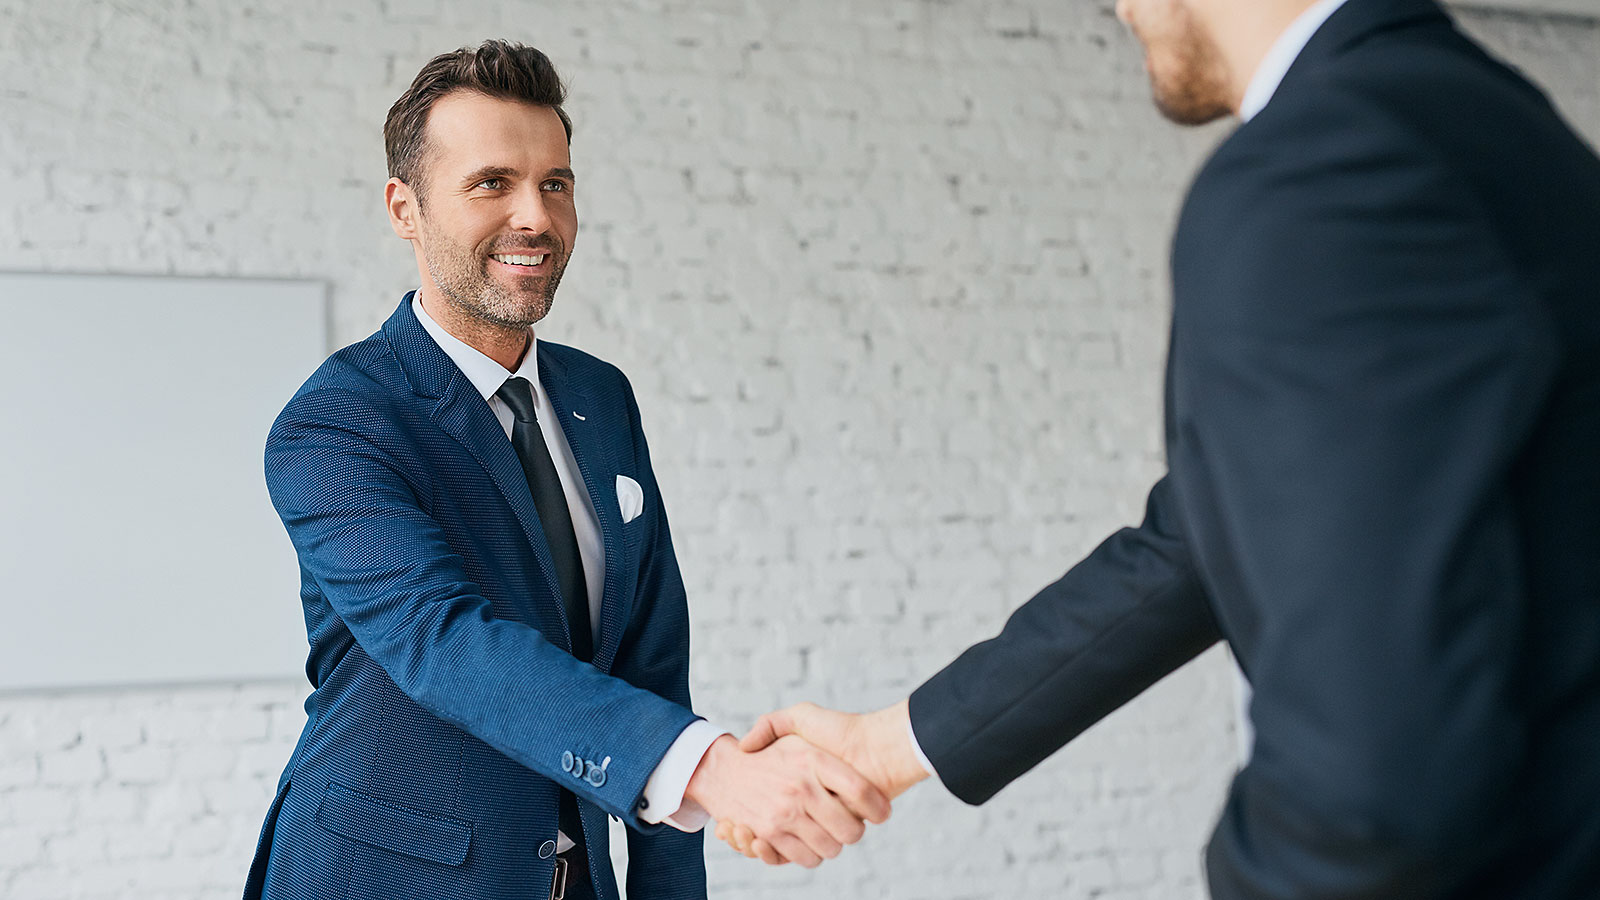 Interviewers admit to hiring by outfits over references, and other horrific stats